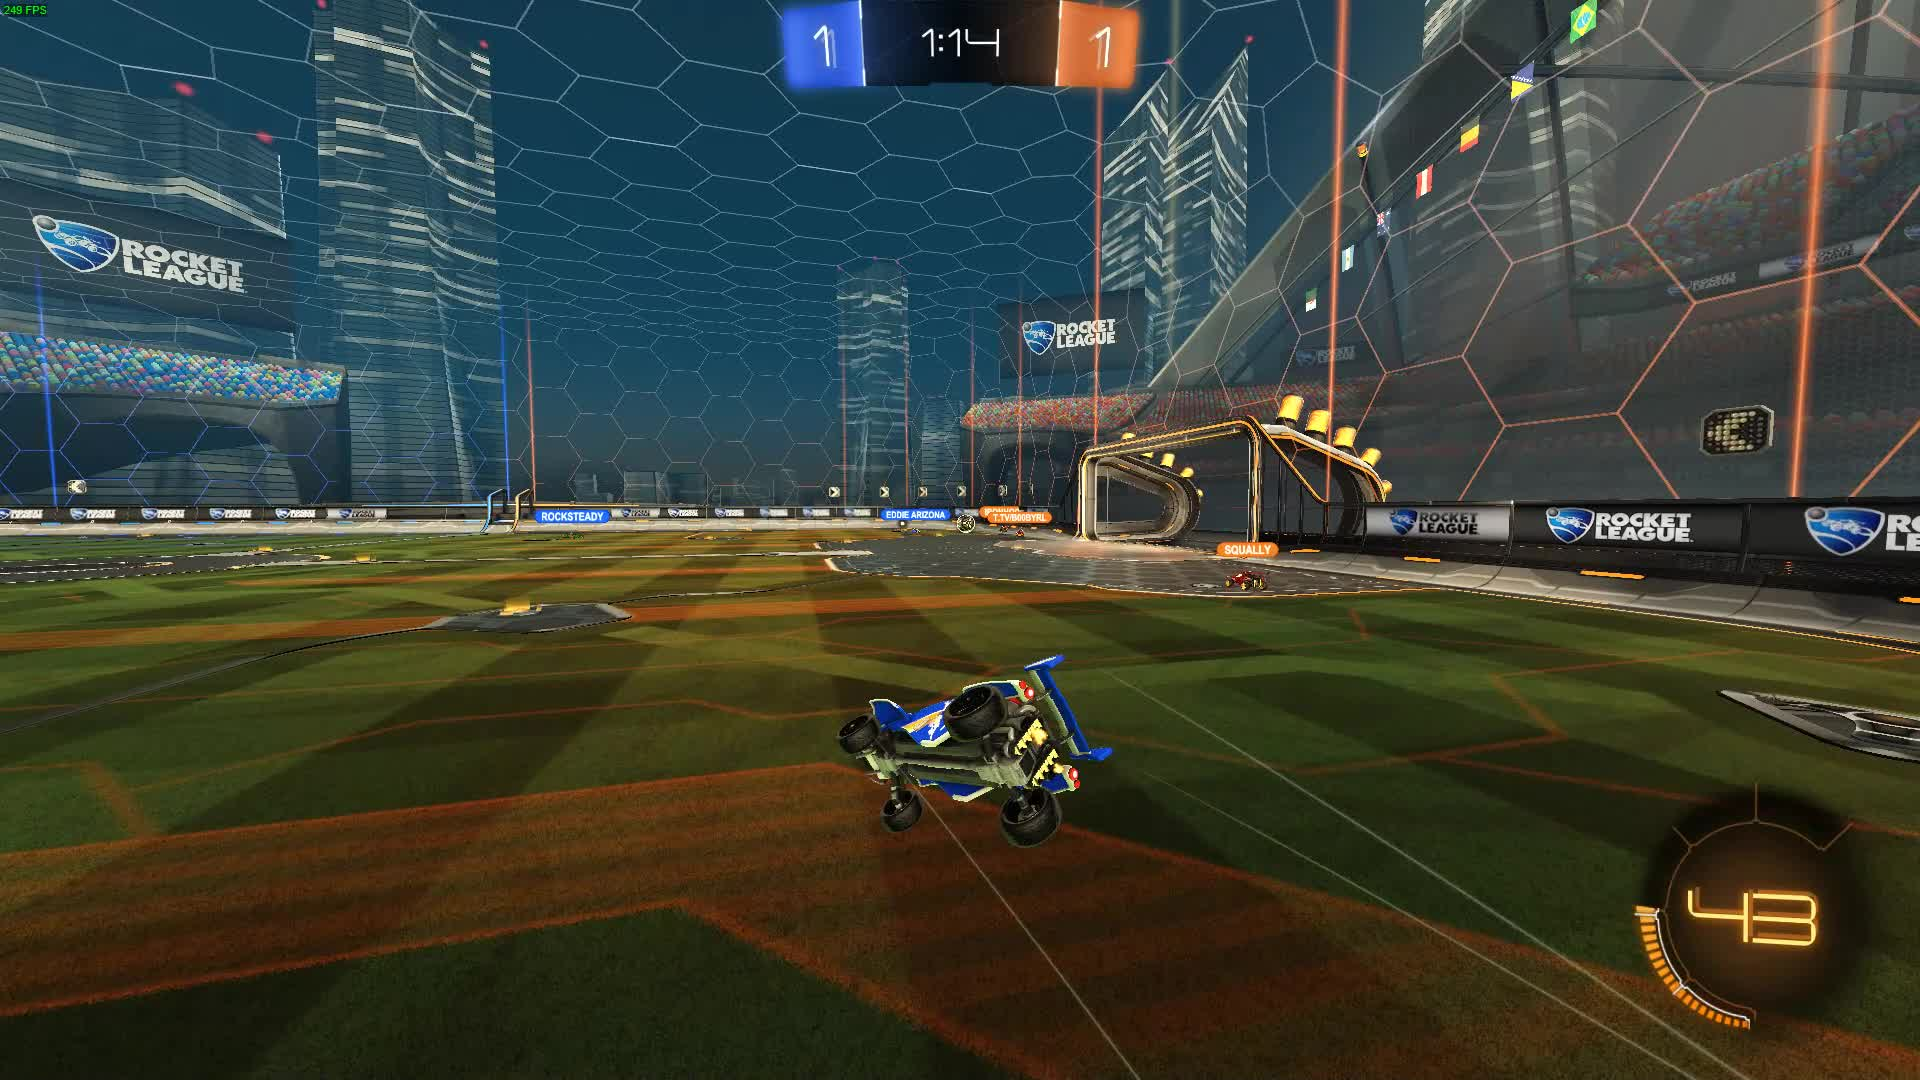 Gaming, Goal, Rocket League, RocketLeague, Video Games, Rocket League GIFs